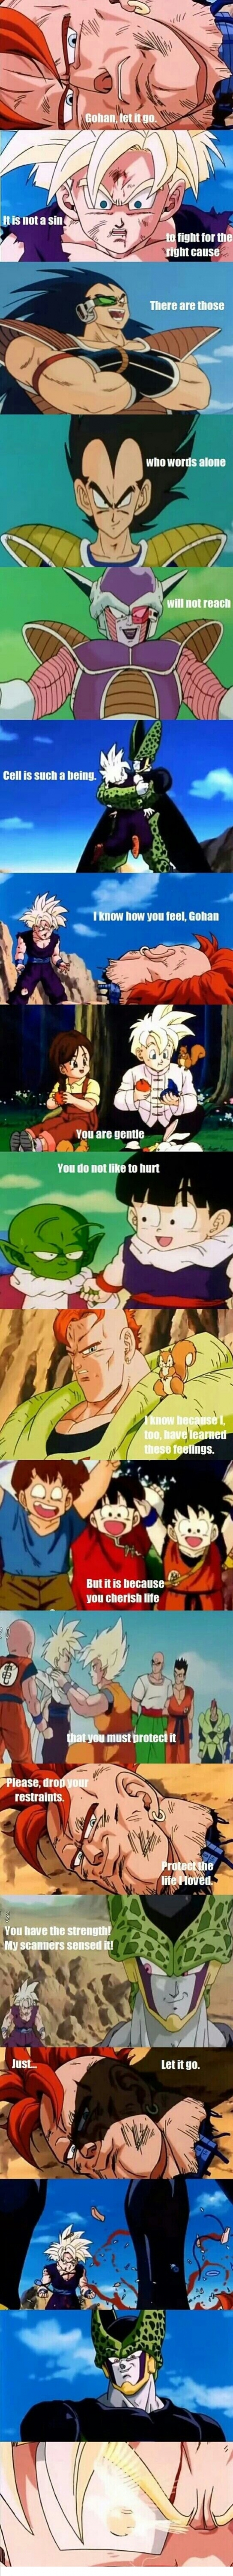 Read It In 16s Voice Animes Forever Com Anime Dragon Ball Anime Dragon Ball Super Dragon Ball Artwork